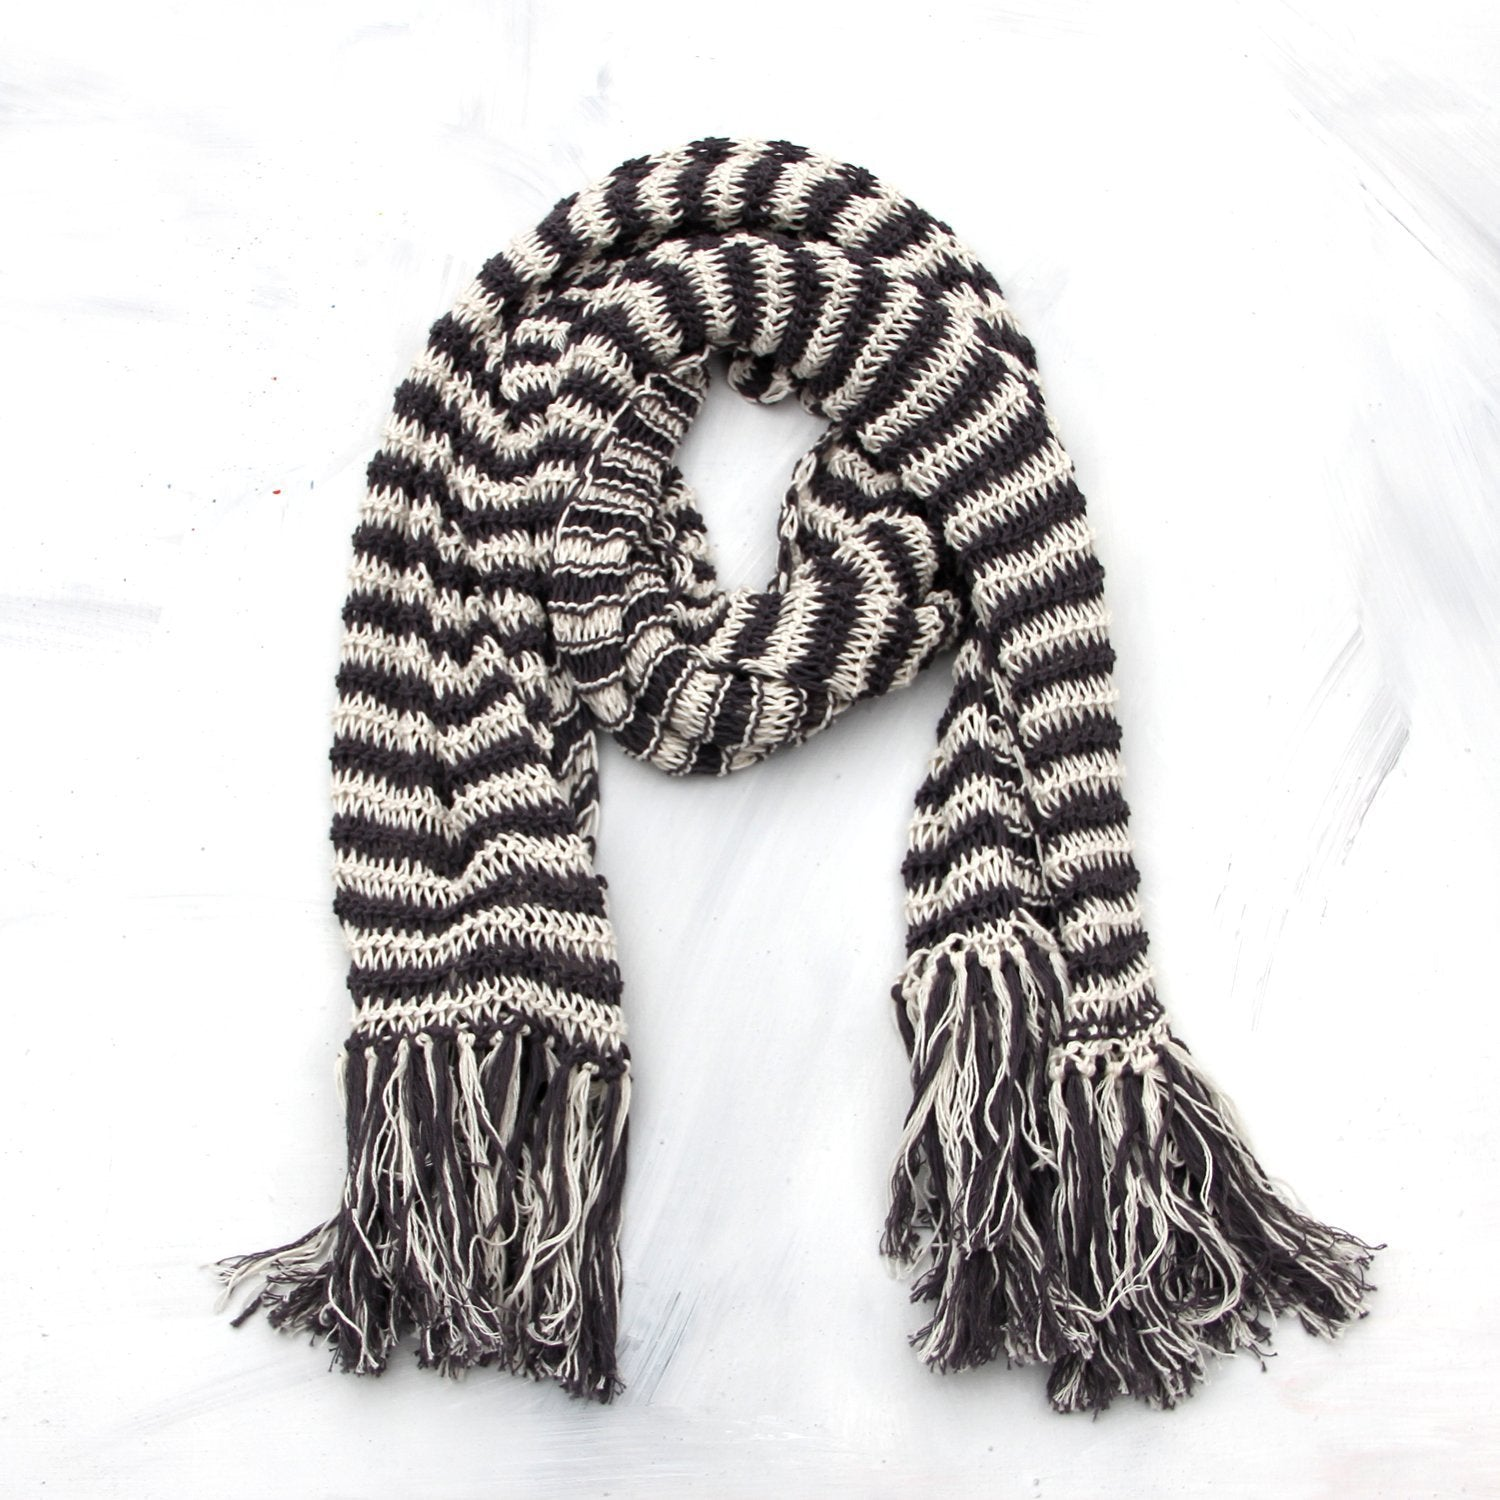 b5e74aca68911 Prancing Leopard Organic cotton artisan knitted striped scarf - dark grey  and natural white stripes